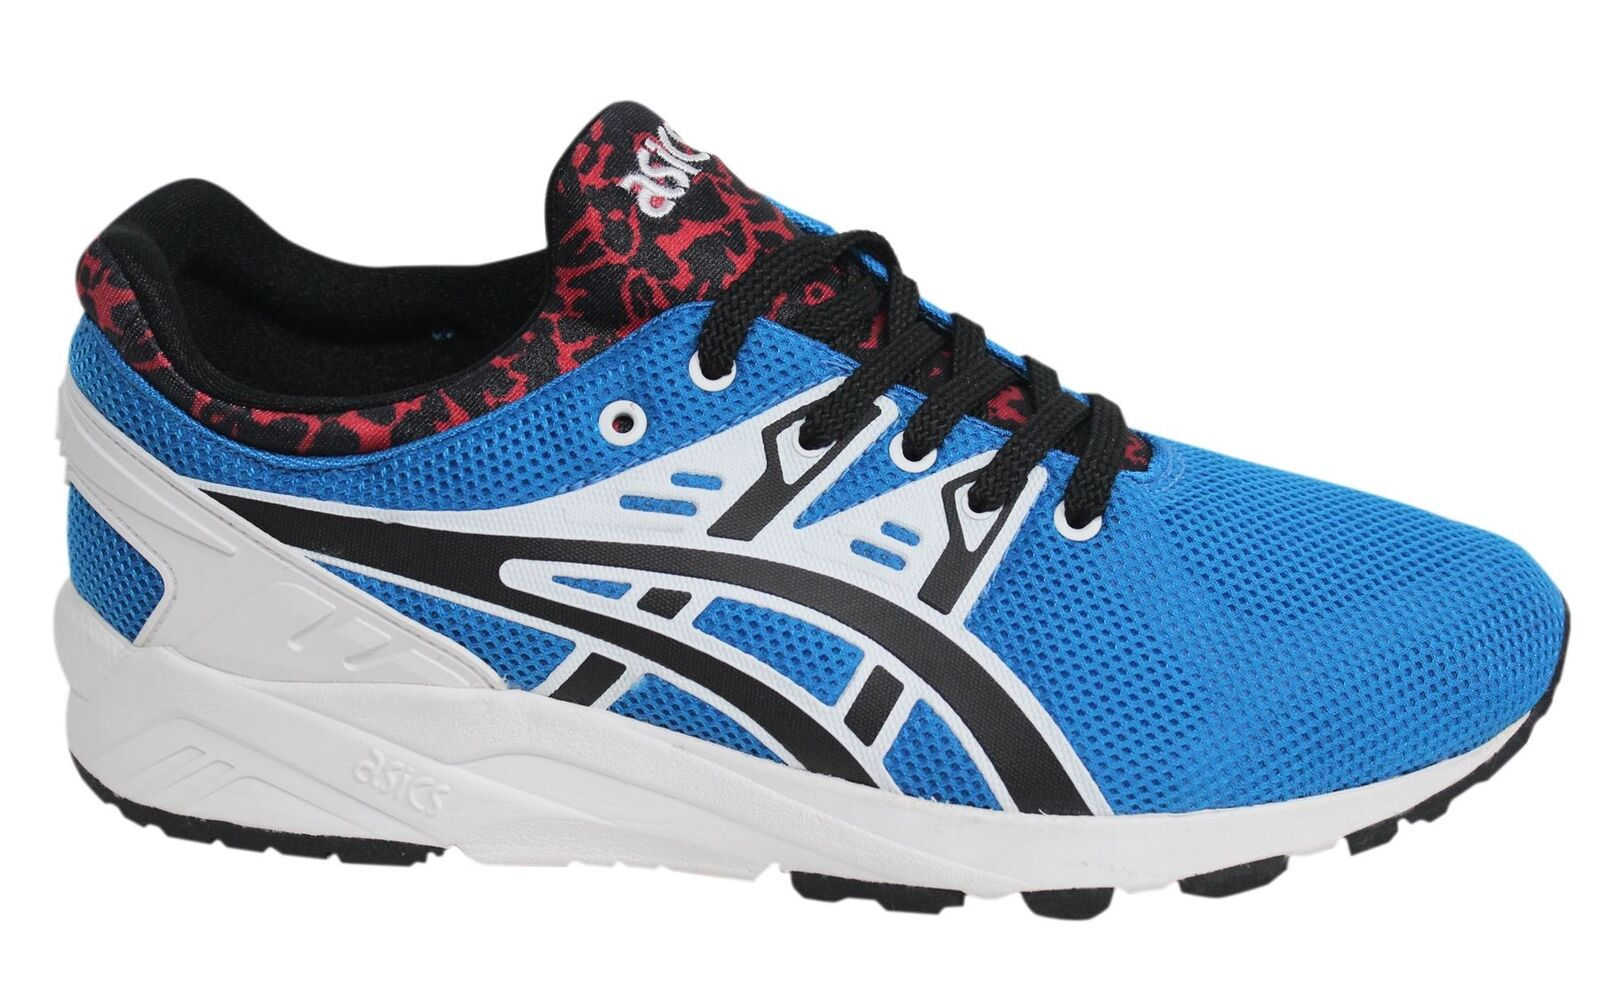 Asics Gel-Kayano bluee Textile Lace Up Mens Trainers HN513 4290 M14